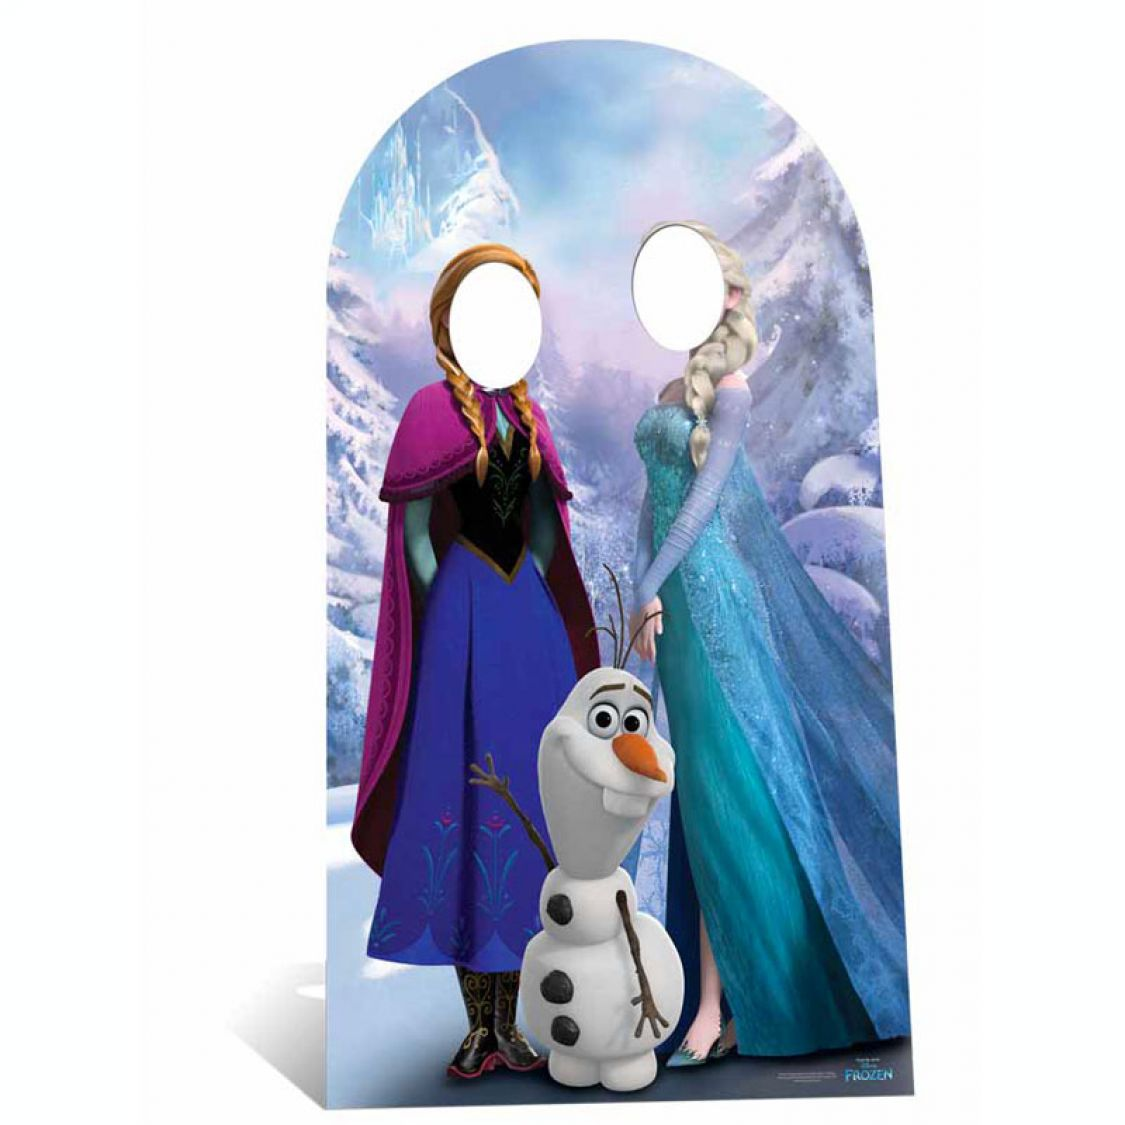 figurine passe t te reine des neiges adulte. Black Bedroom Furniture Sets. Home Design Ideas